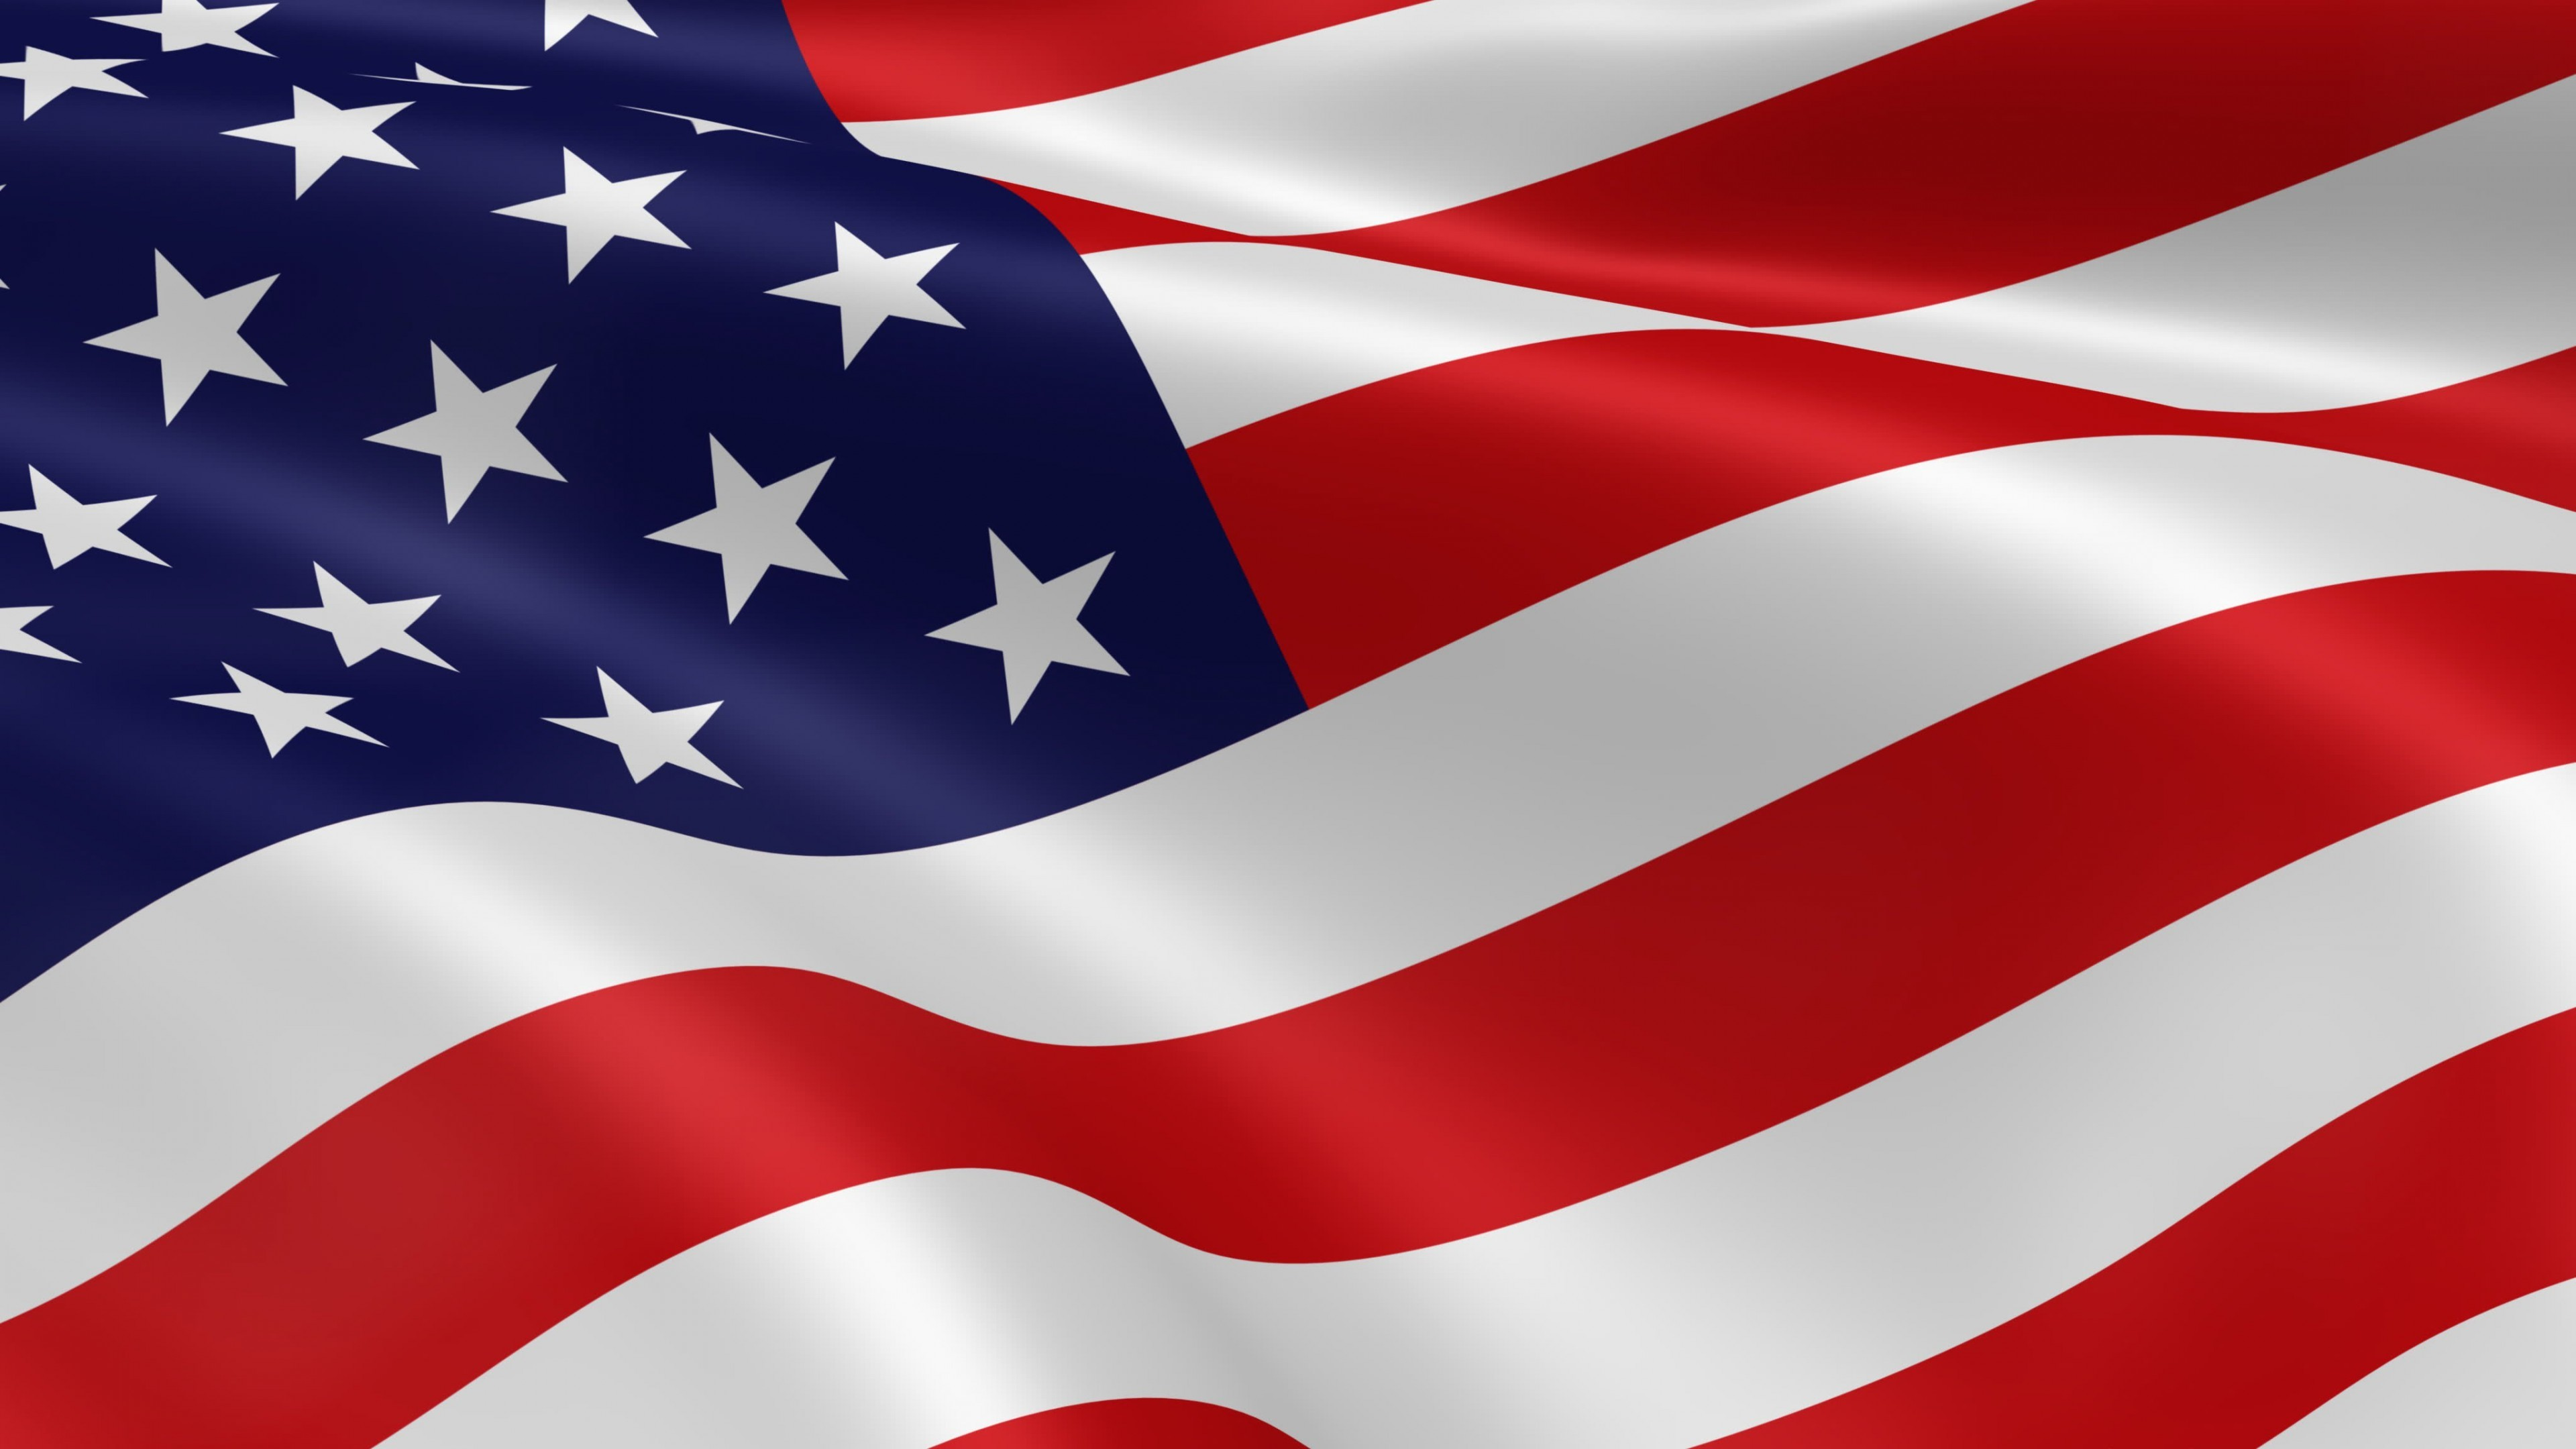 Usa flag wallpapers 74 background pictures 3840x2160 world usa flag wallpaper publicscrutiny Gallery